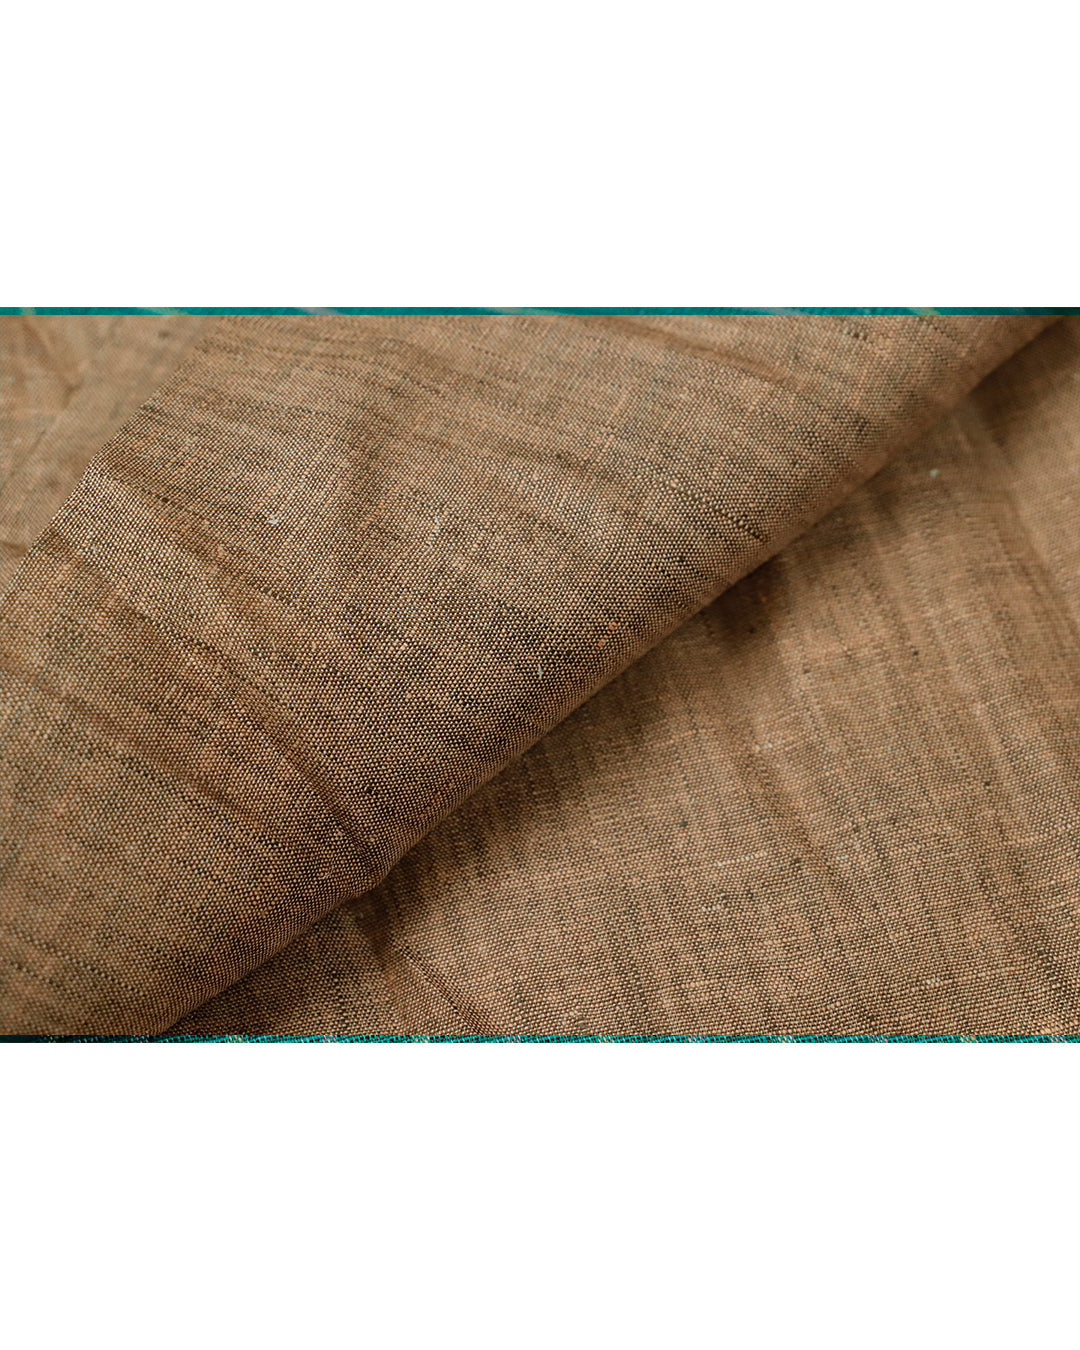 Peanut brown color Linen material